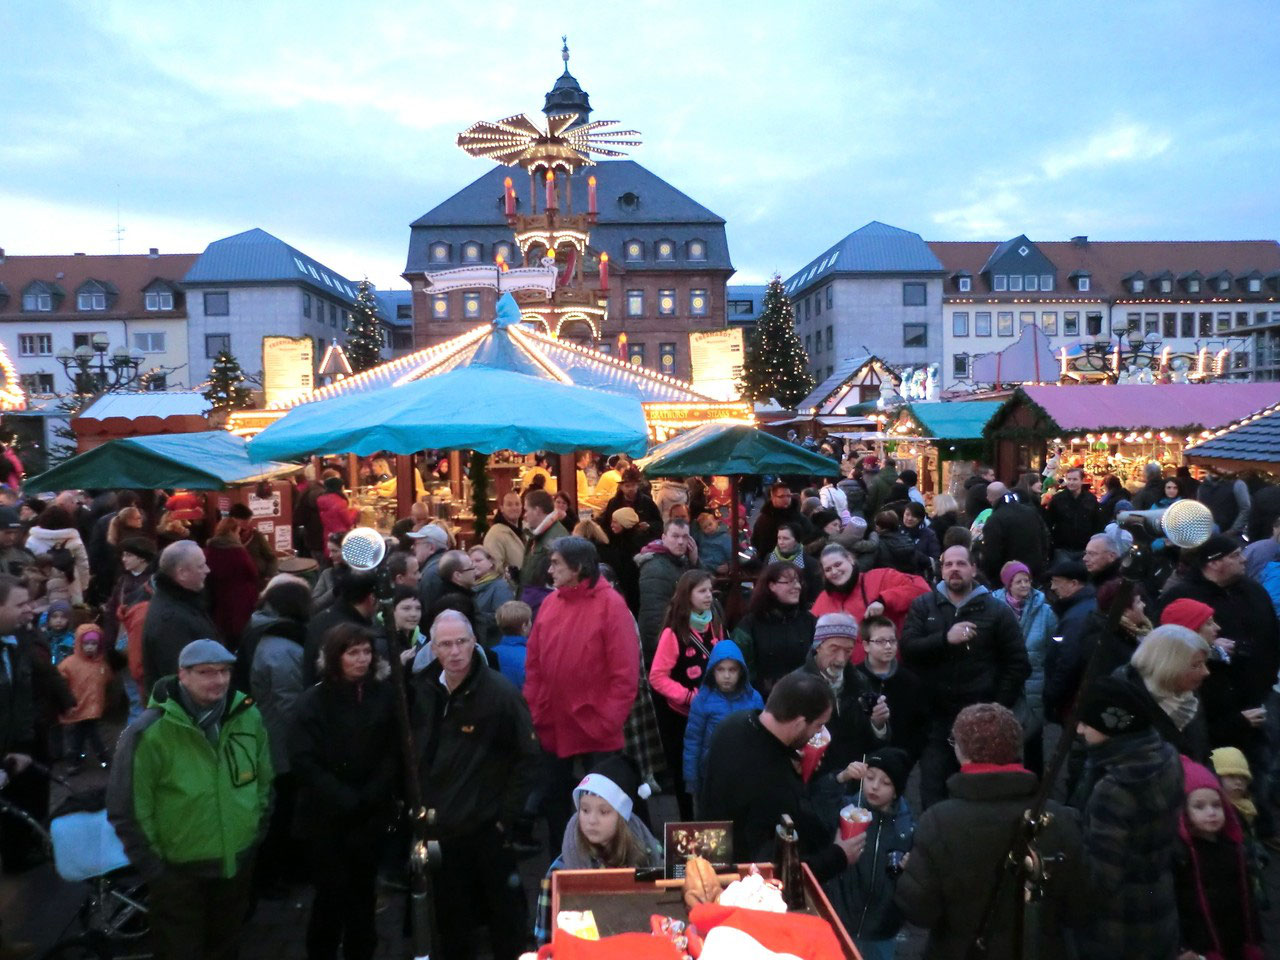 Weihnachtsmarkt Hanau.Weihnachtsmarkt Hanau Wingerts Acoustic Music Unplugged